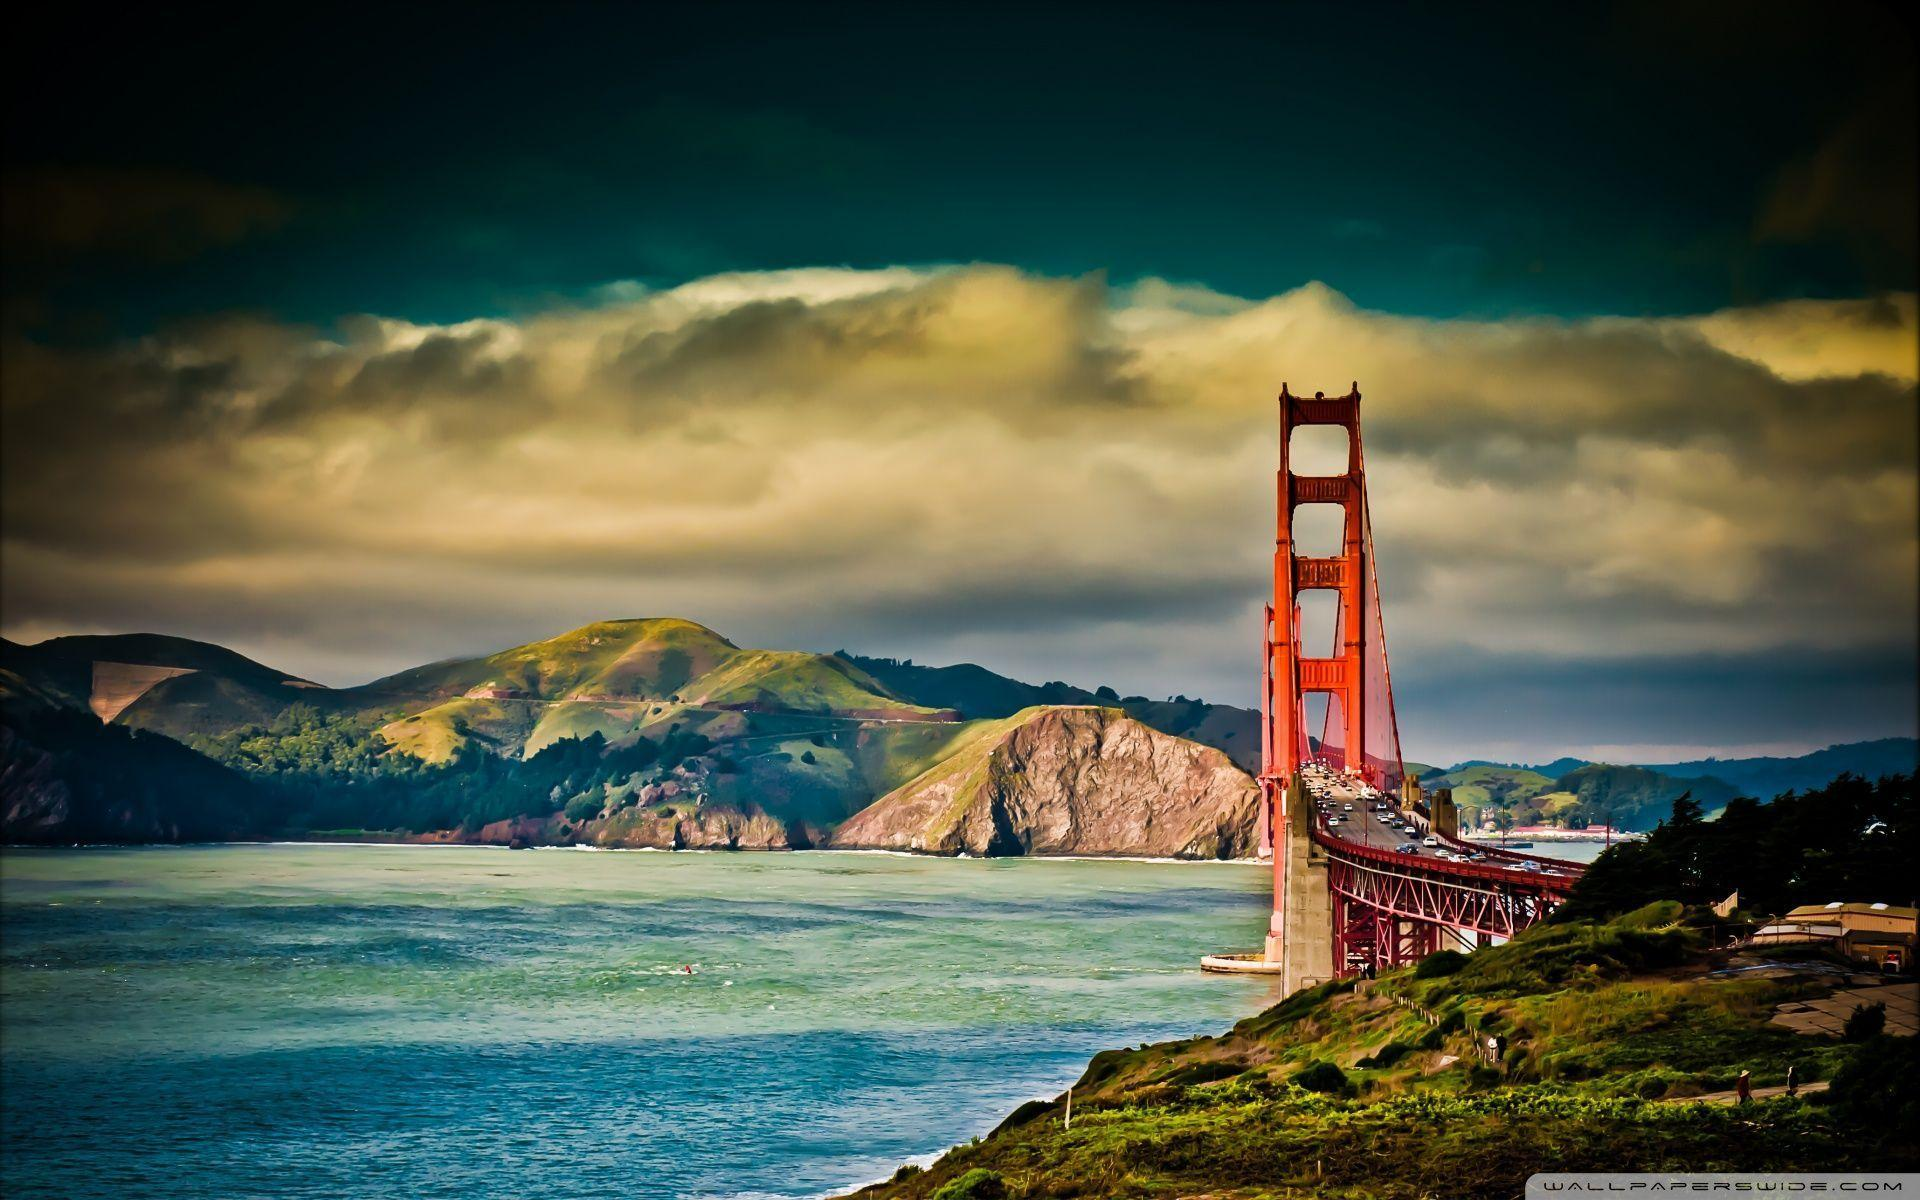 Golden Gate Bridge wallpaper,USA hd wallpapers,World Scenery